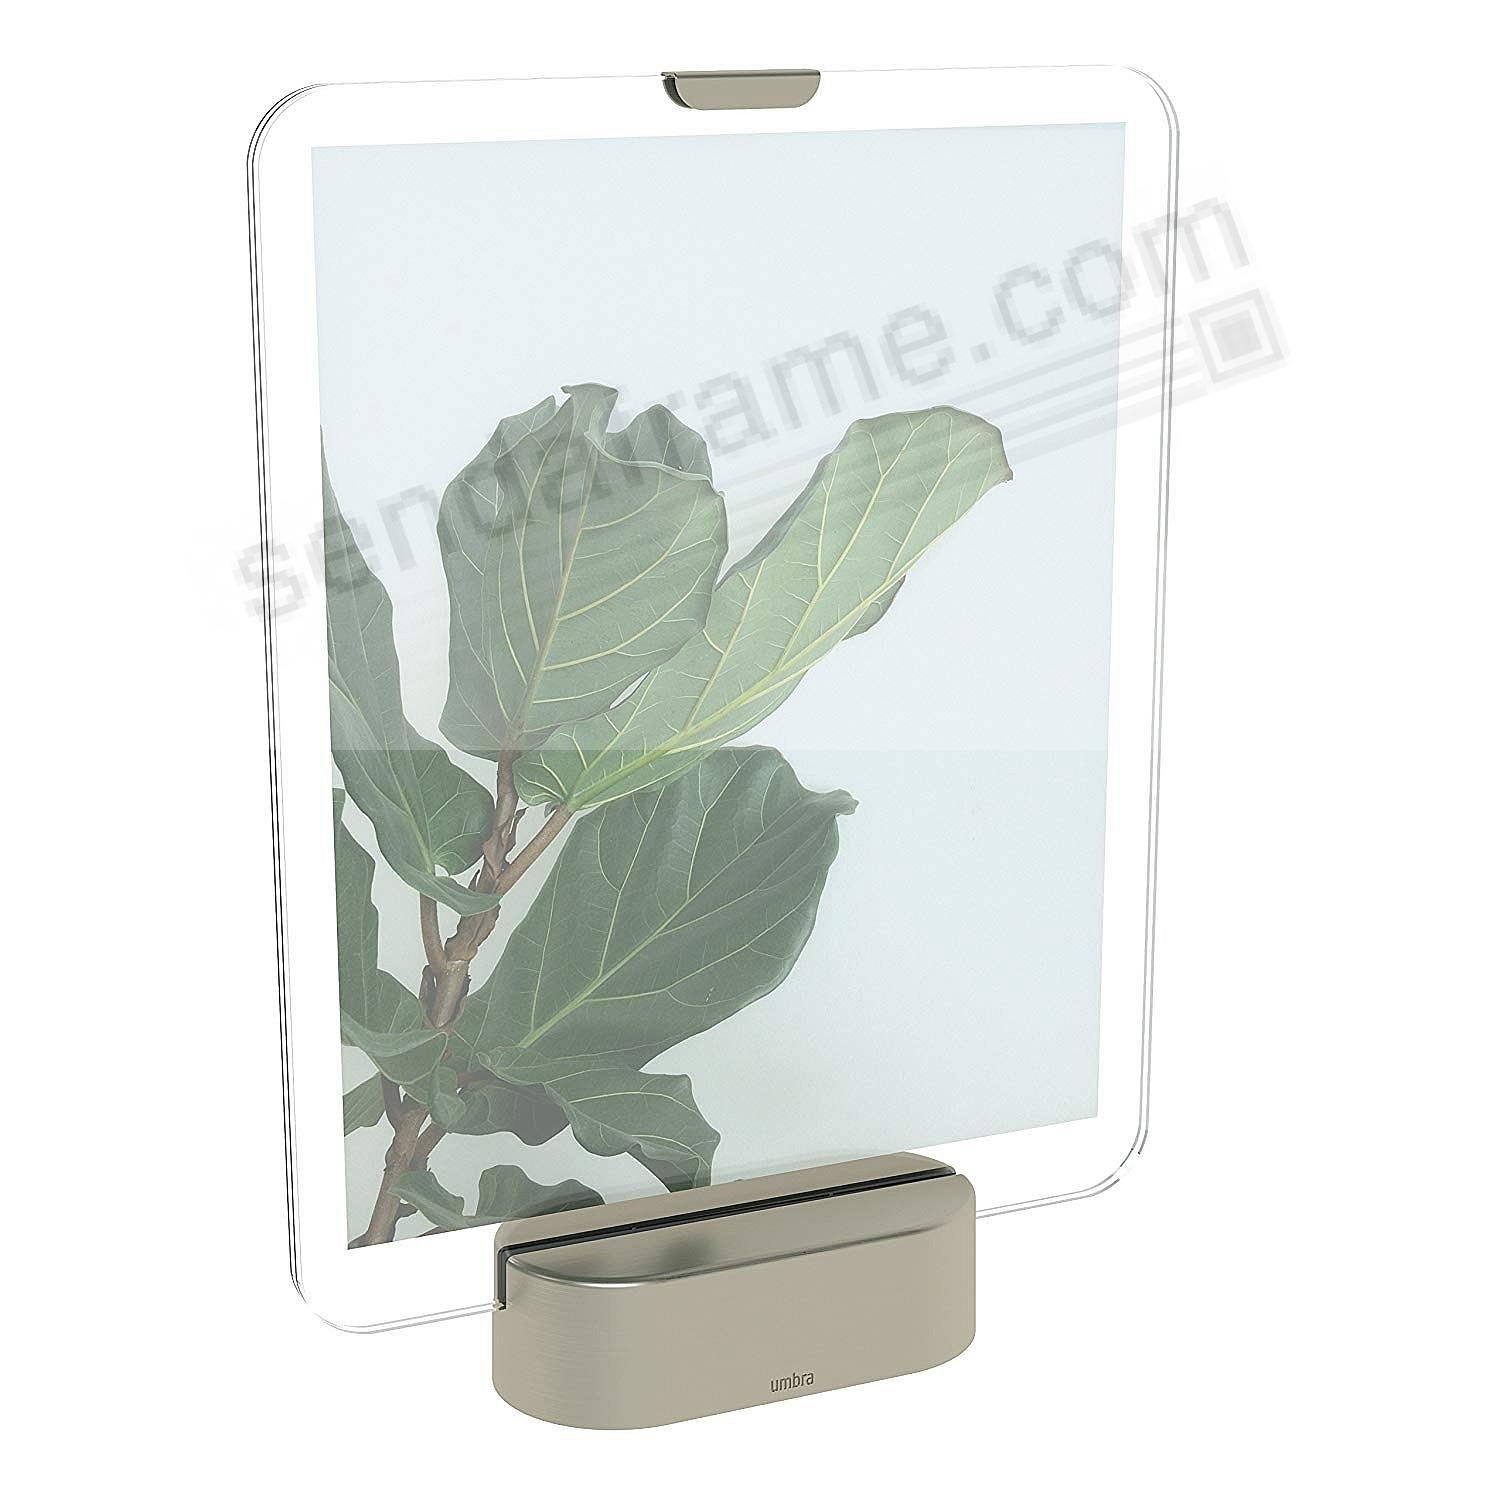 GLO LED Photo Display 8x10 Nickel finish by Umbra®